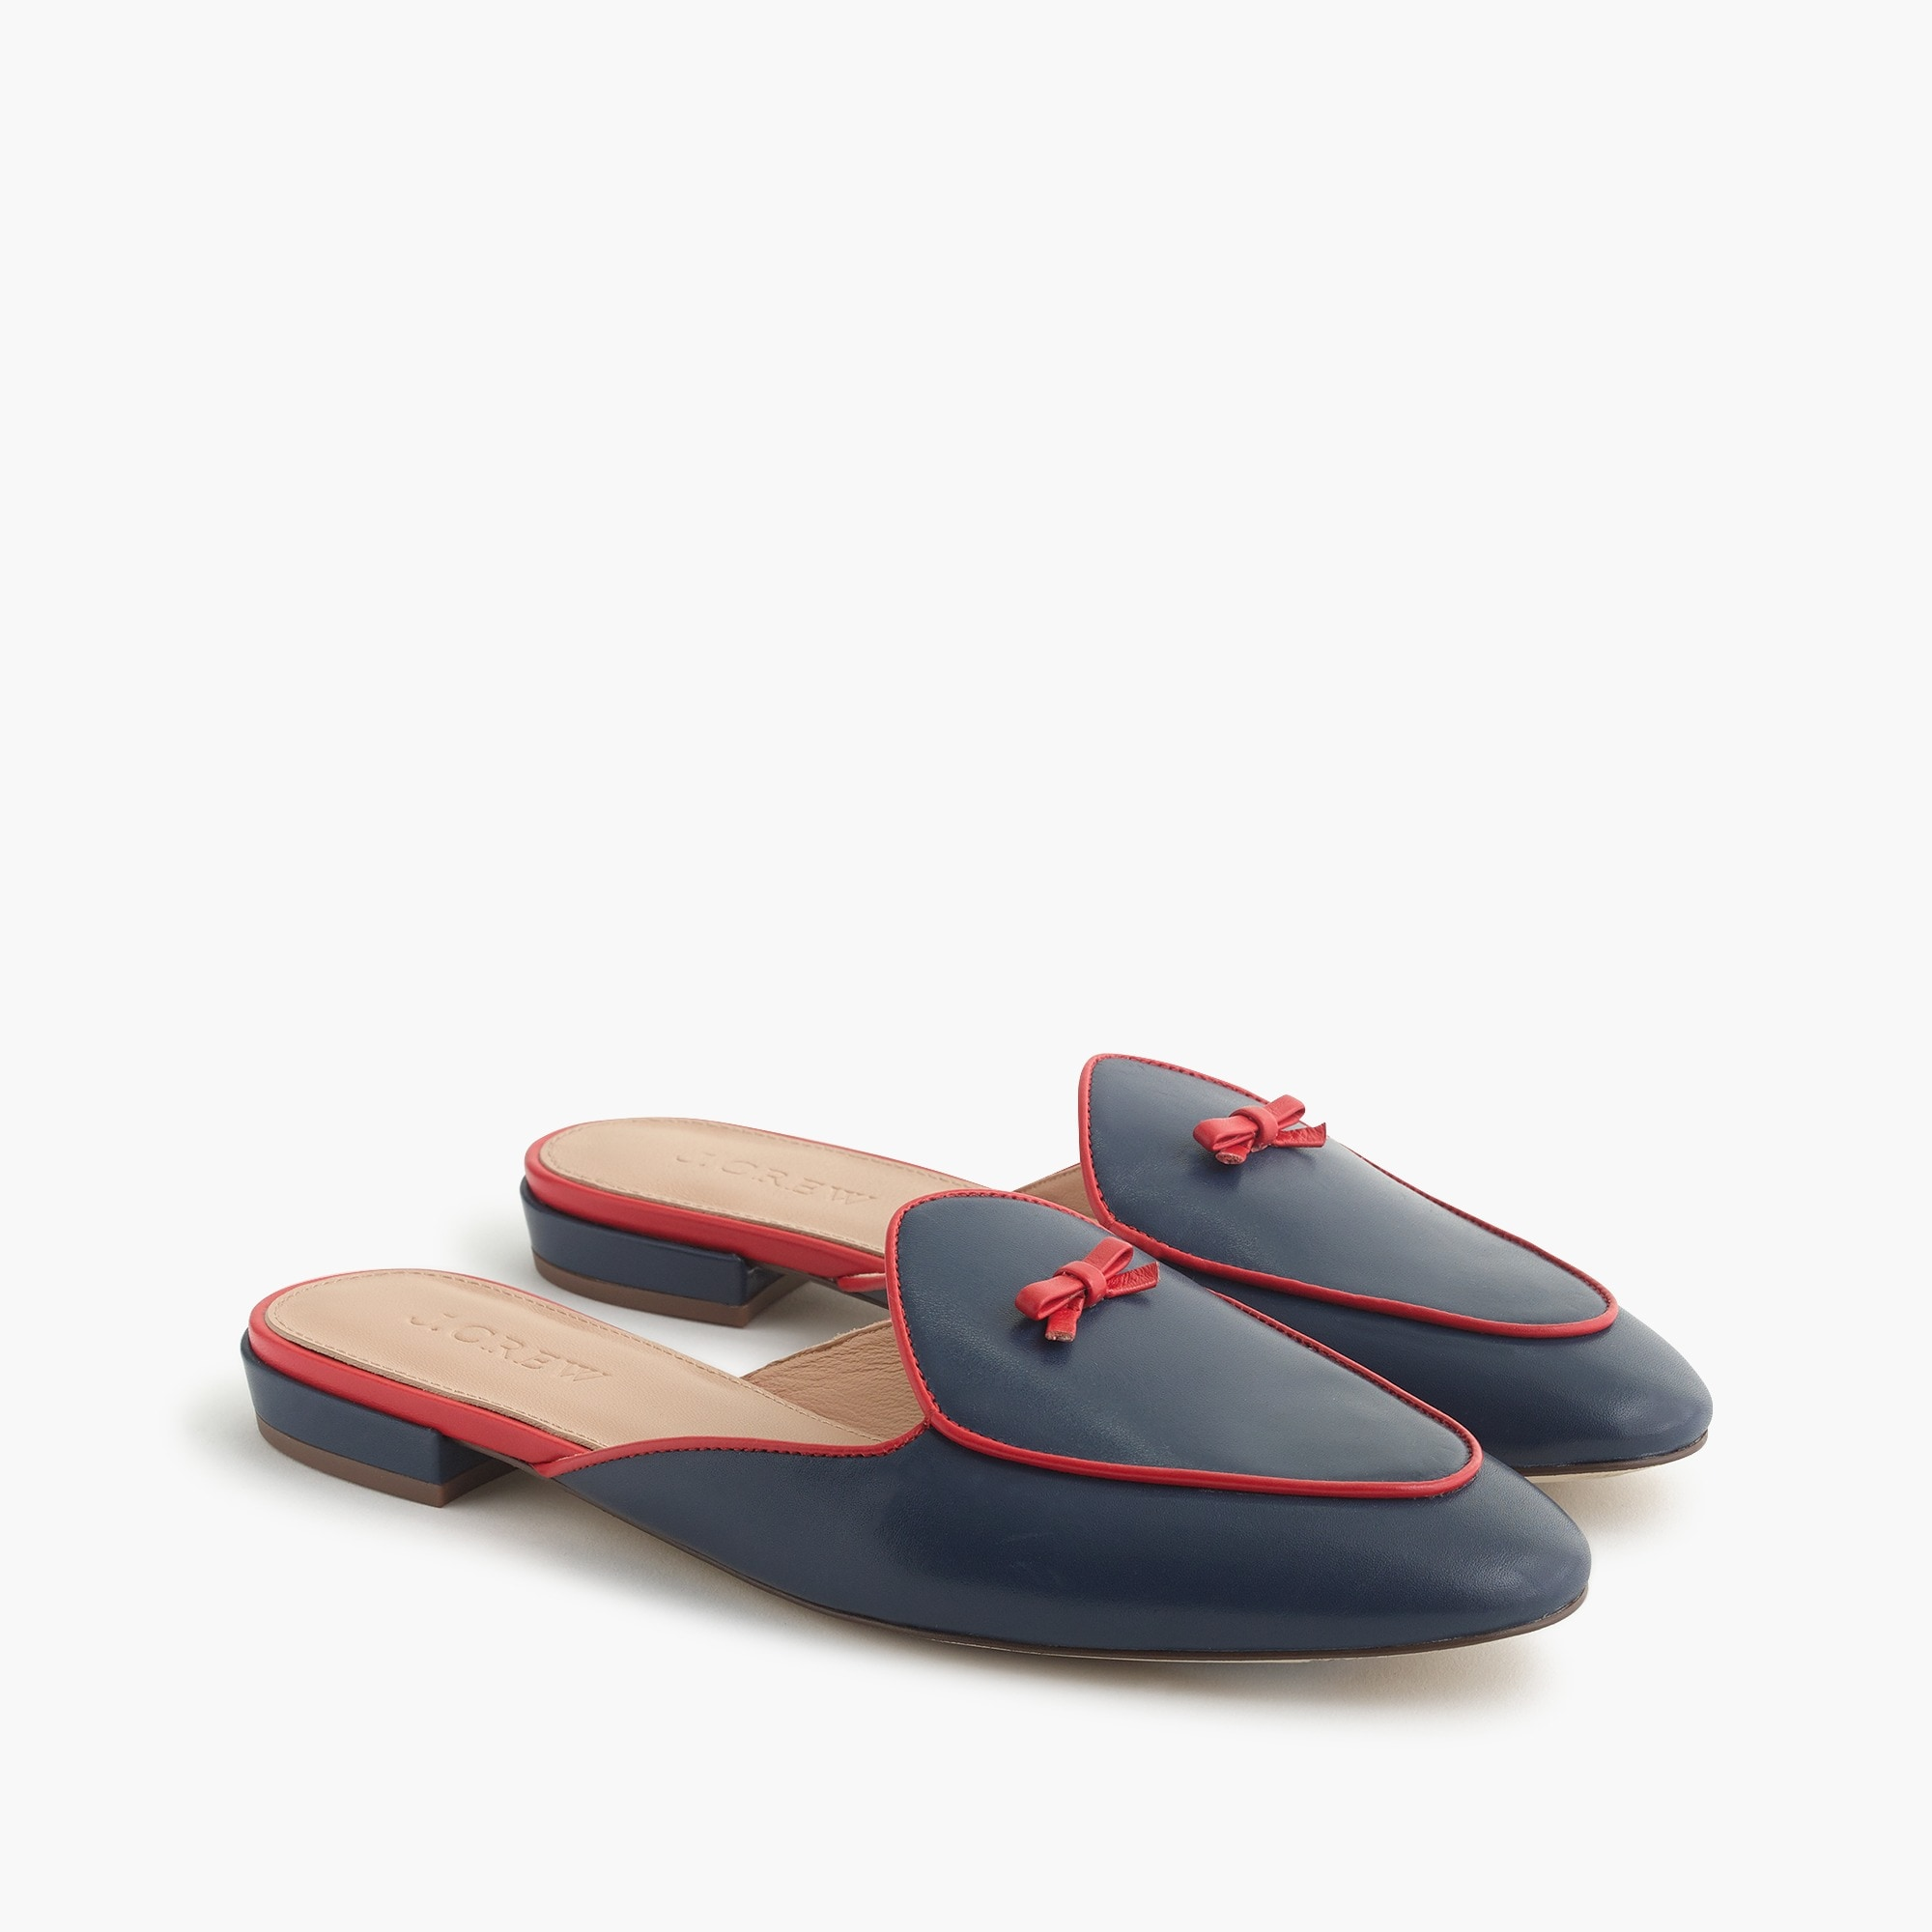 Piped loafer mules in leather